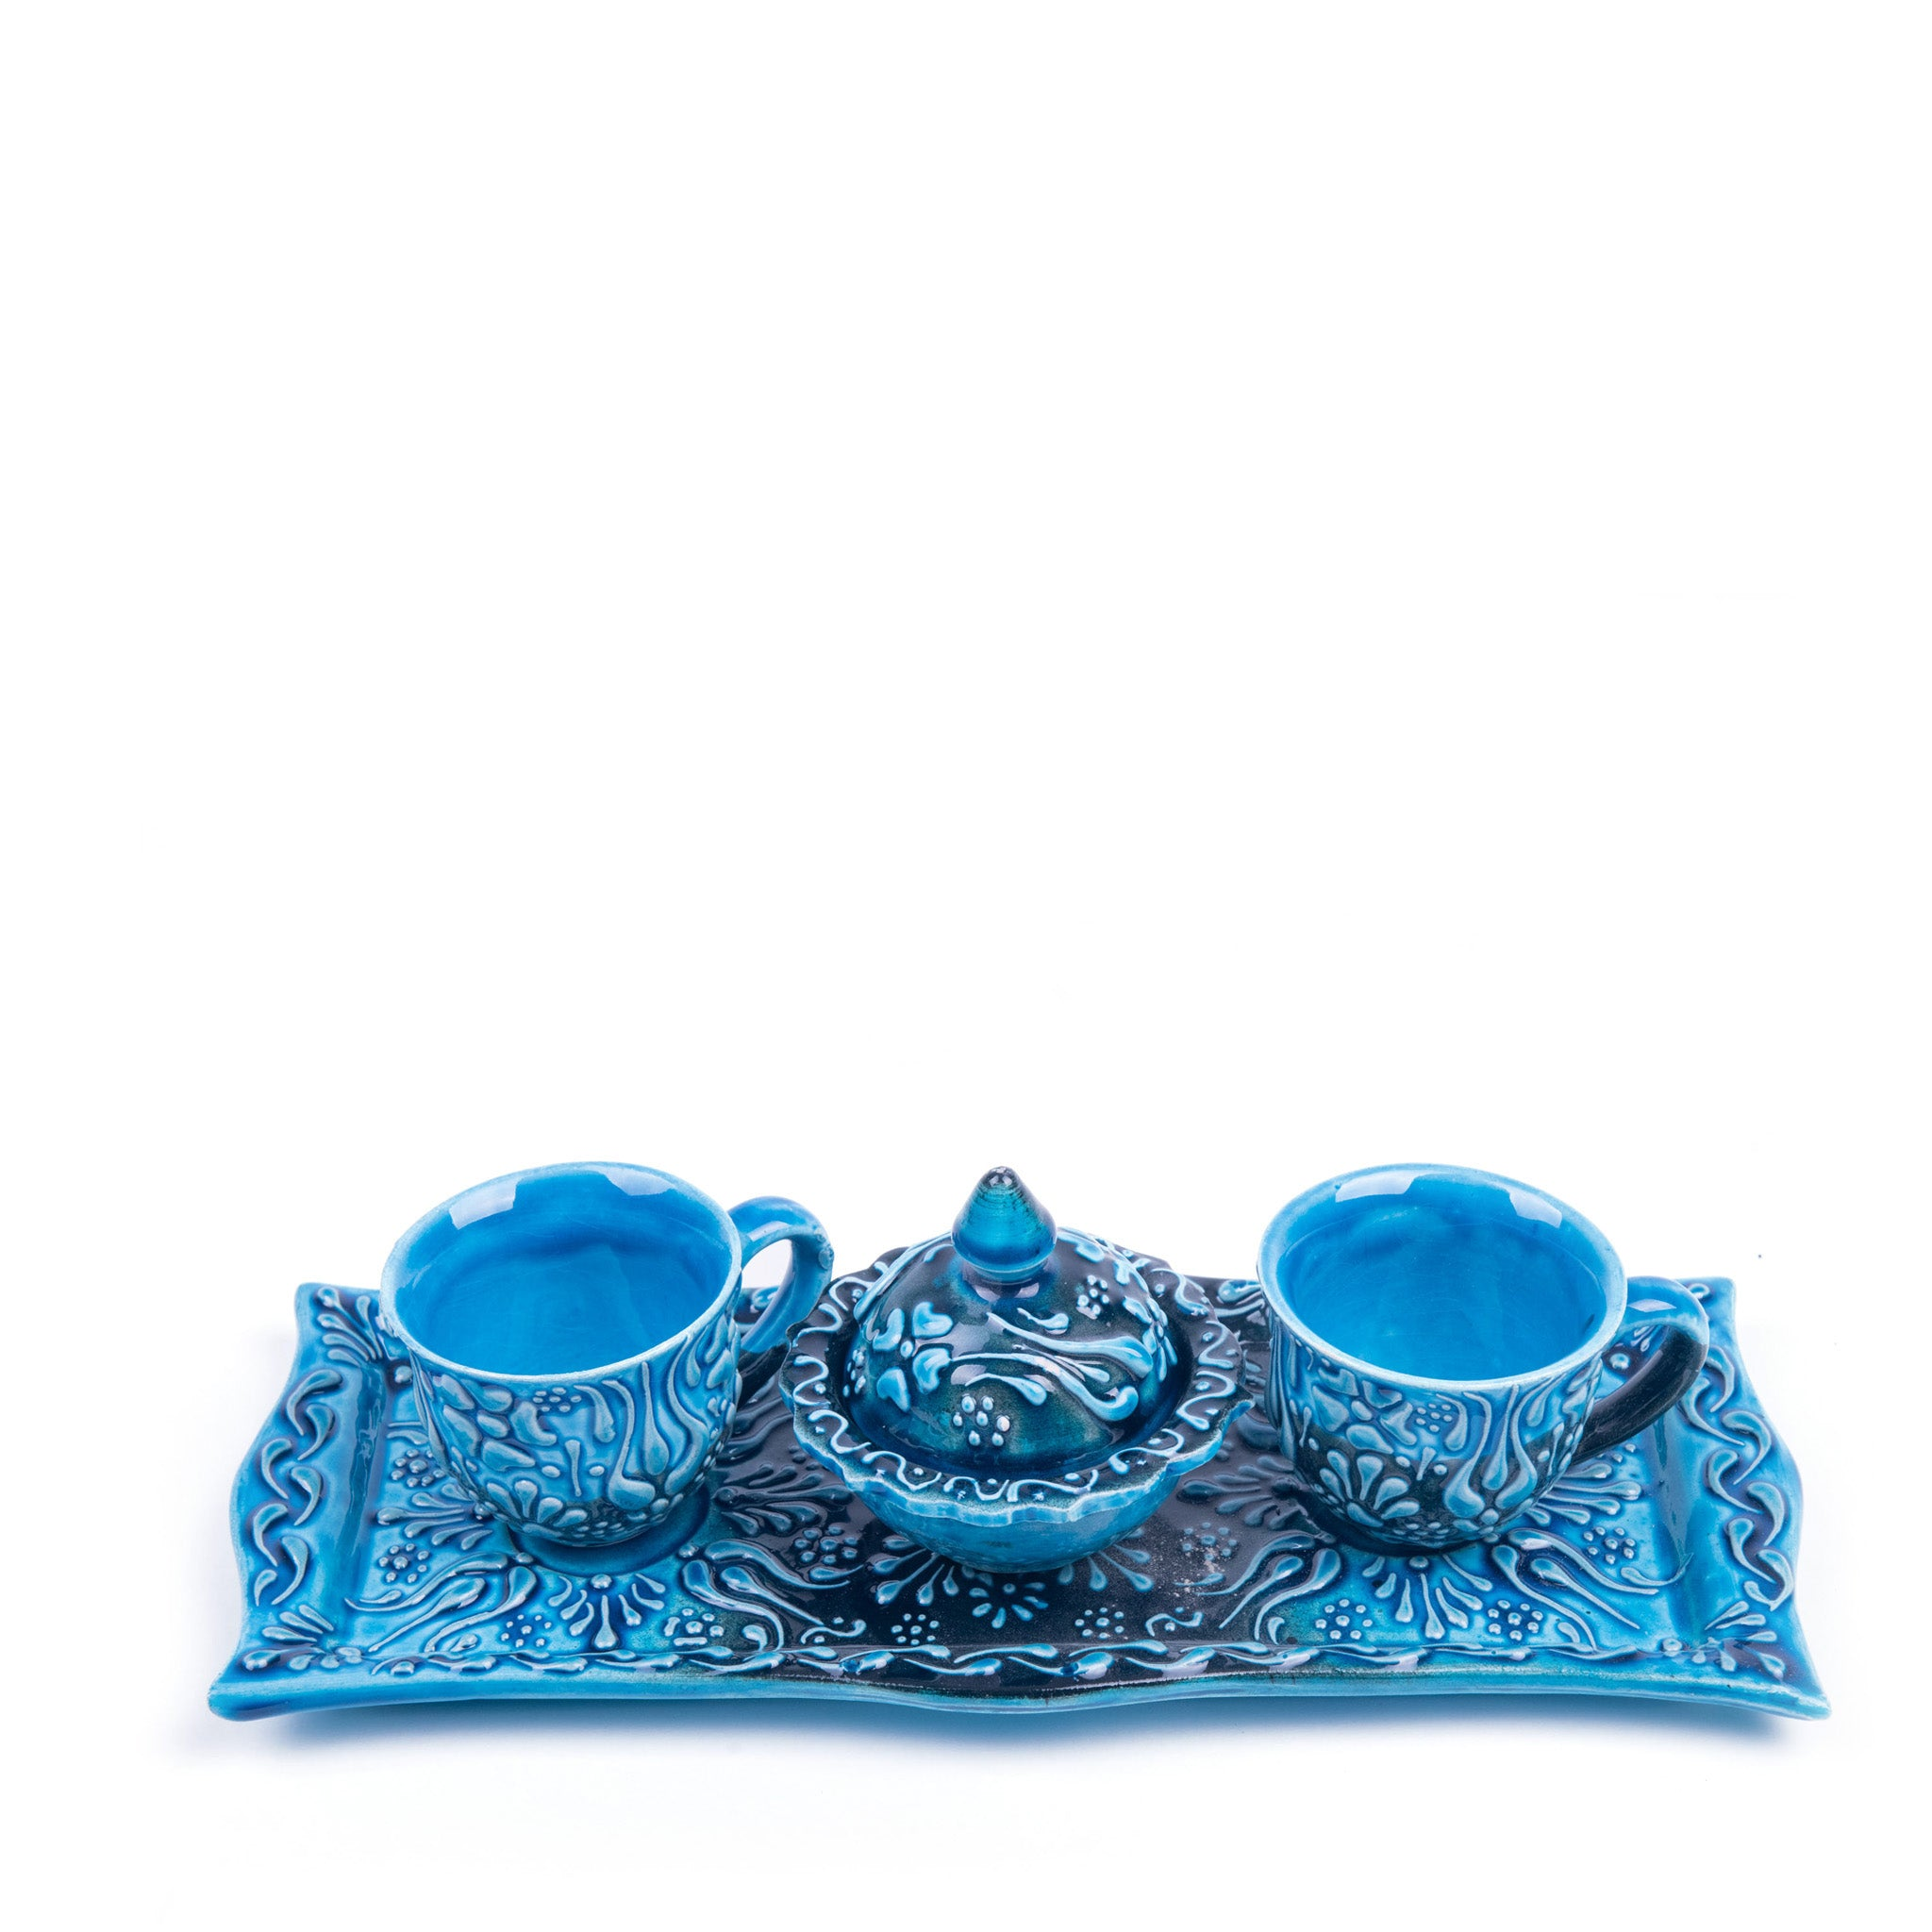 Turkish Ceramic Iznik Design Handmade Coffee Set Of Two With Tray - Turquoise